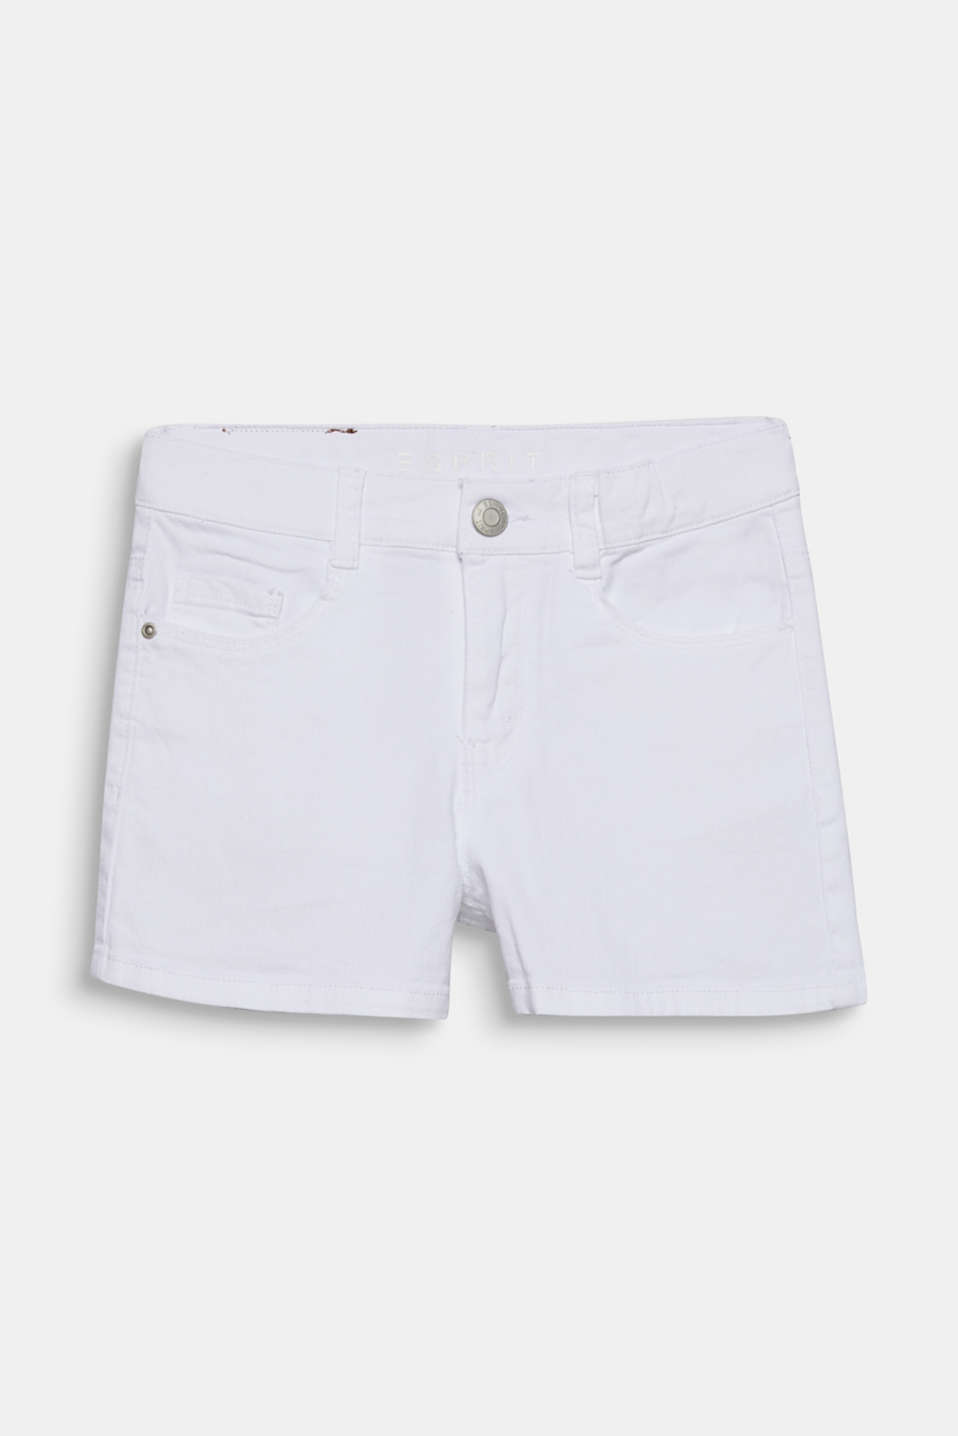 Skinny stretch denim shorts, adjustable waistband, LCWHITE, detail image number 0